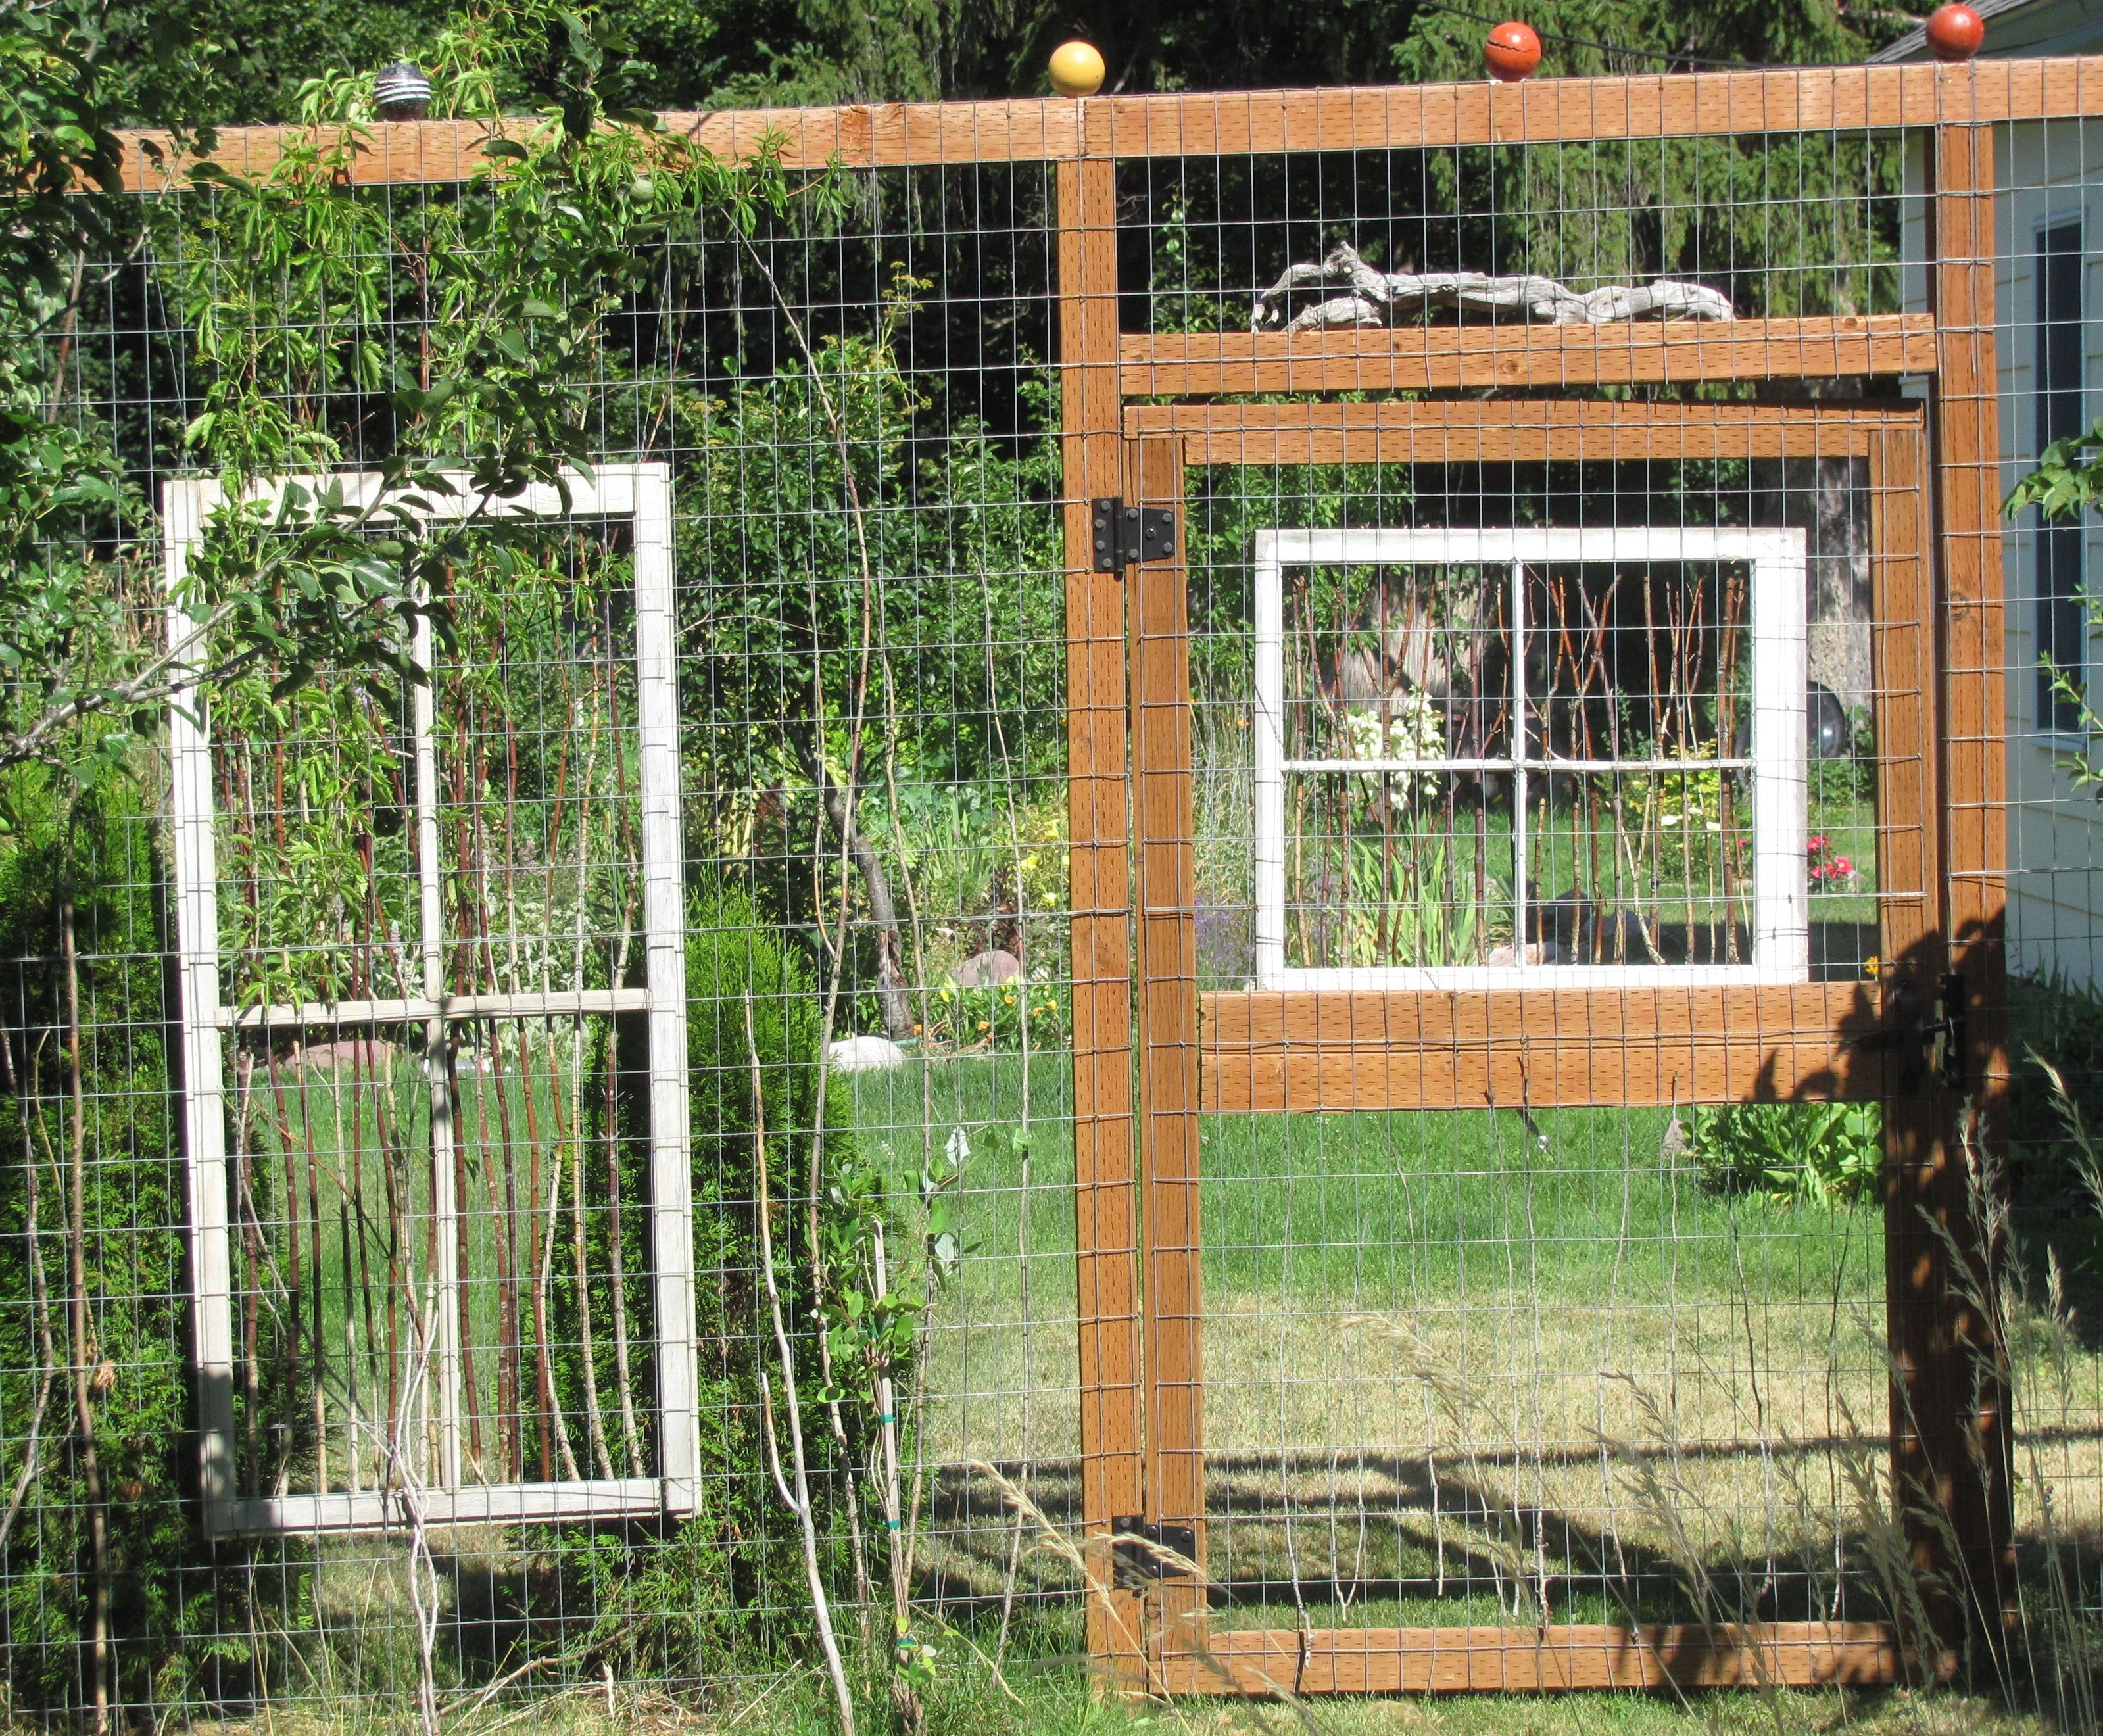 18 DIY Garden Fence Ideas to Keep Your Plants | Wood fences, Fences ...